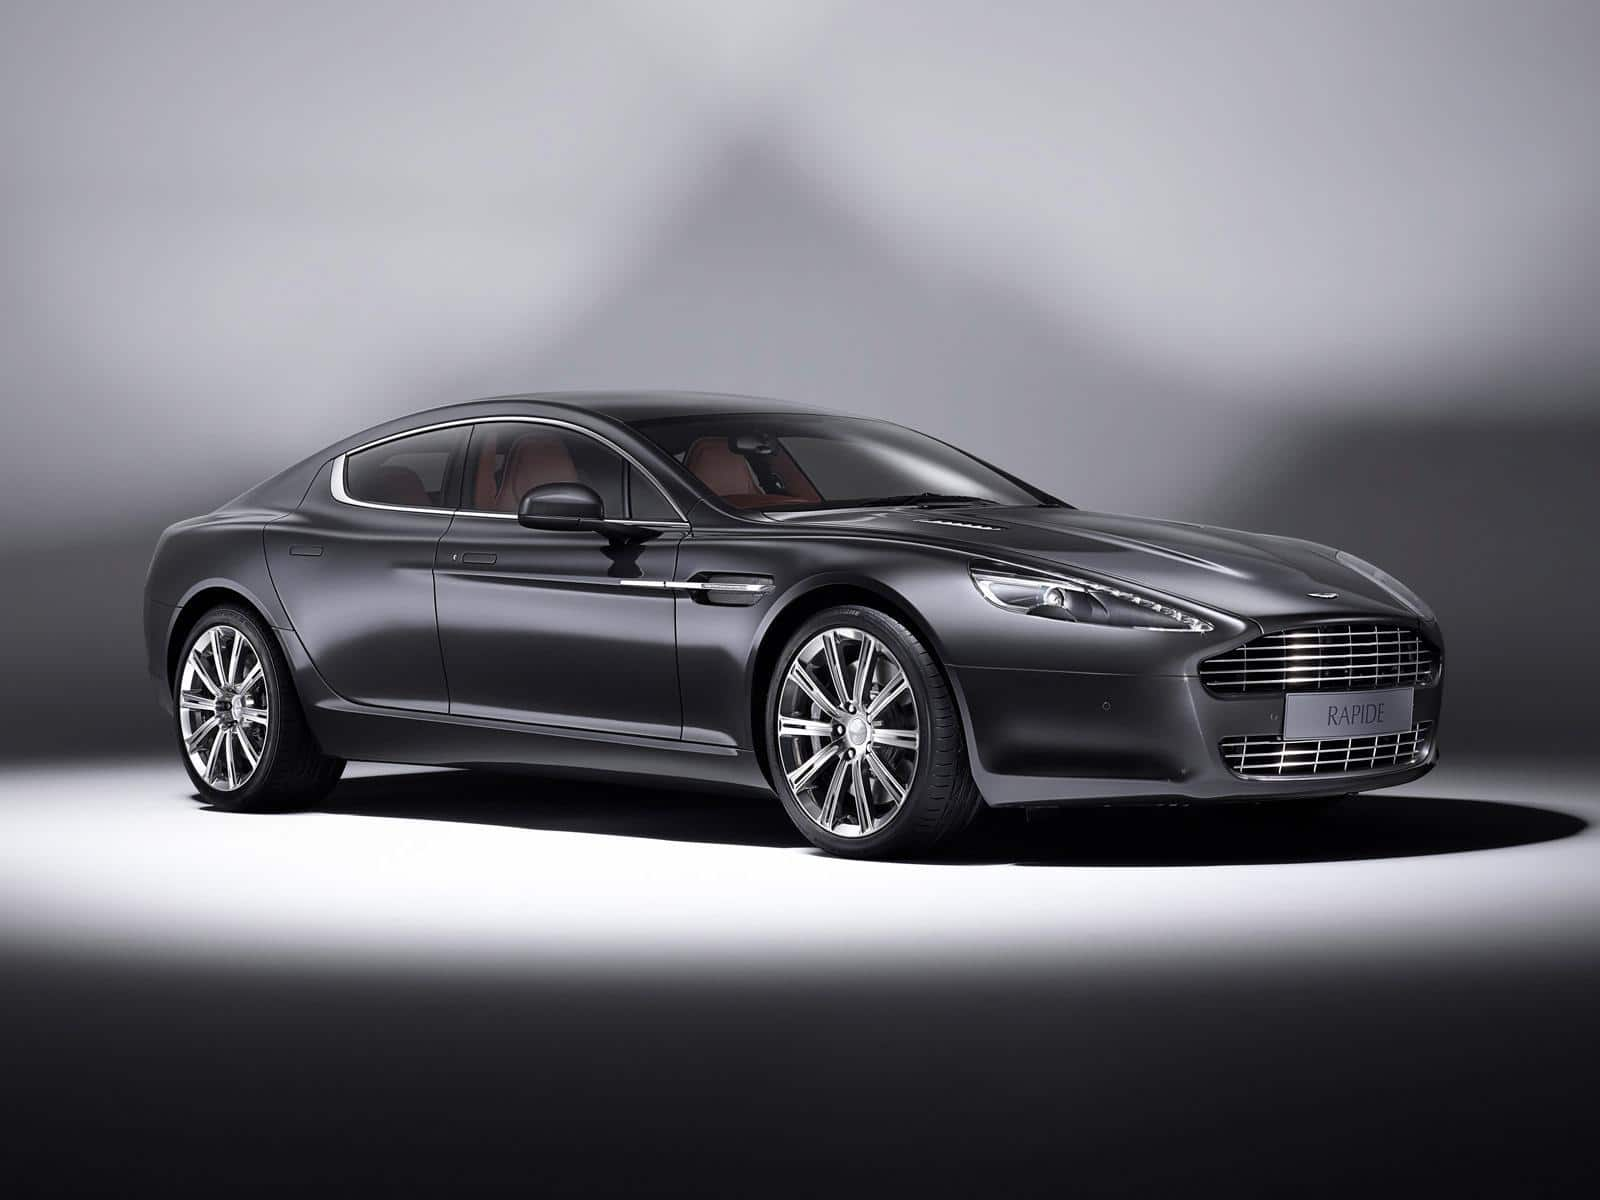 The Aston Martin Rapide Luxe Is Stunning